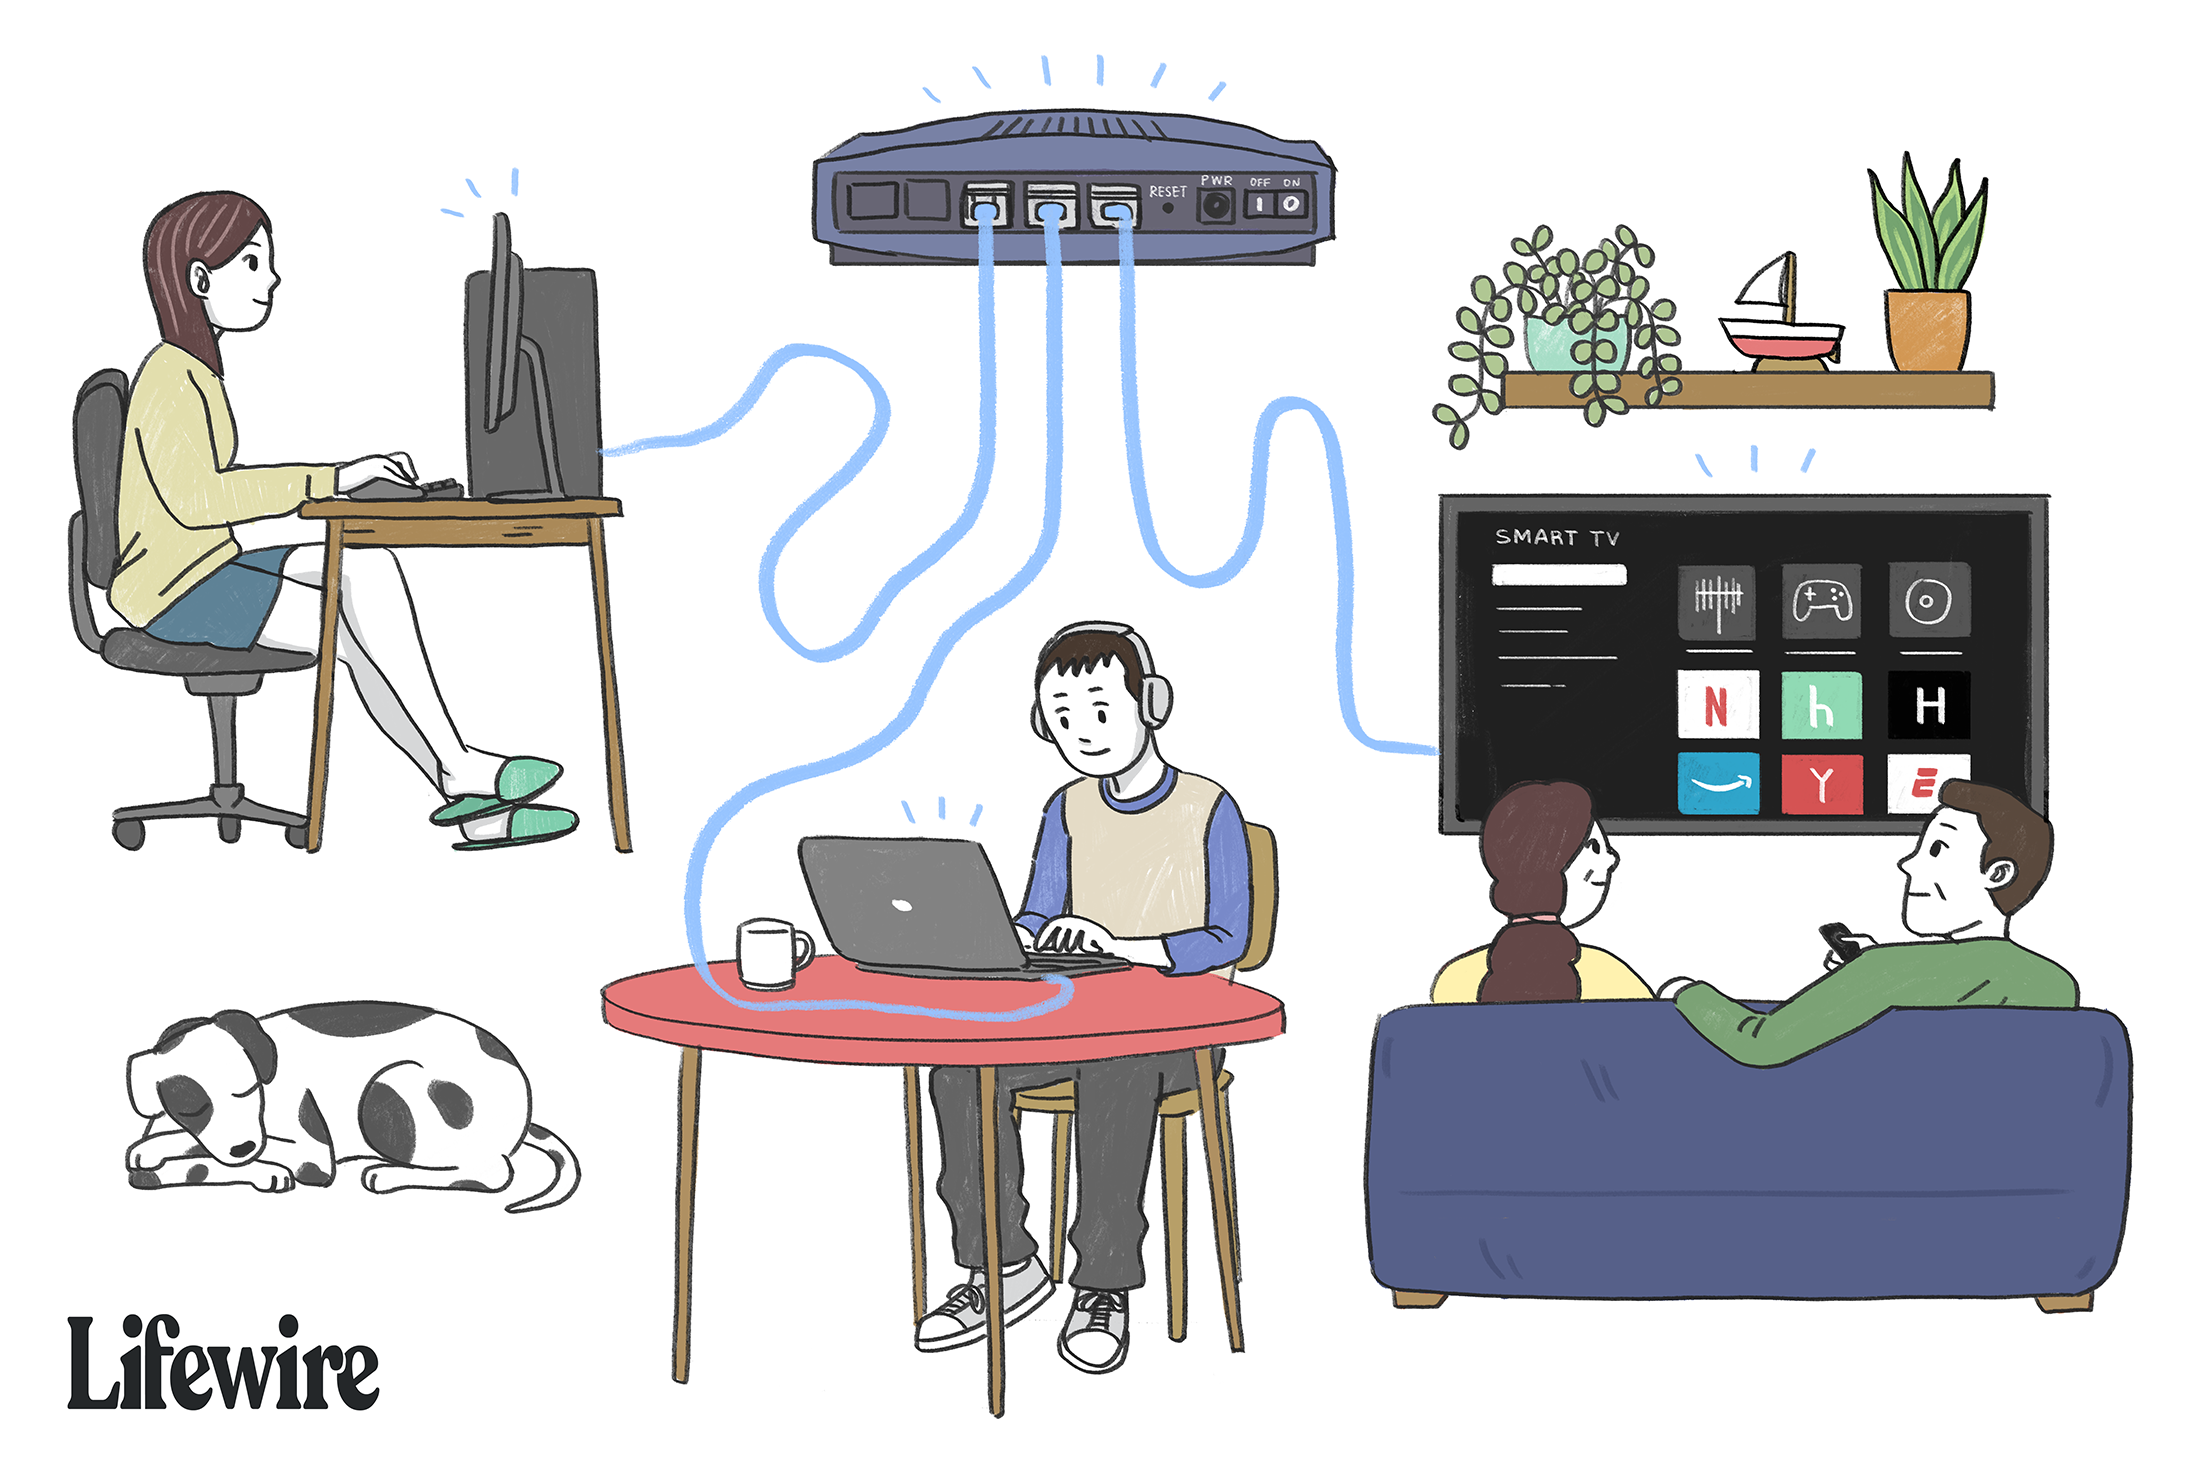 A family using various internet-connected devices all connected via Ethernet.